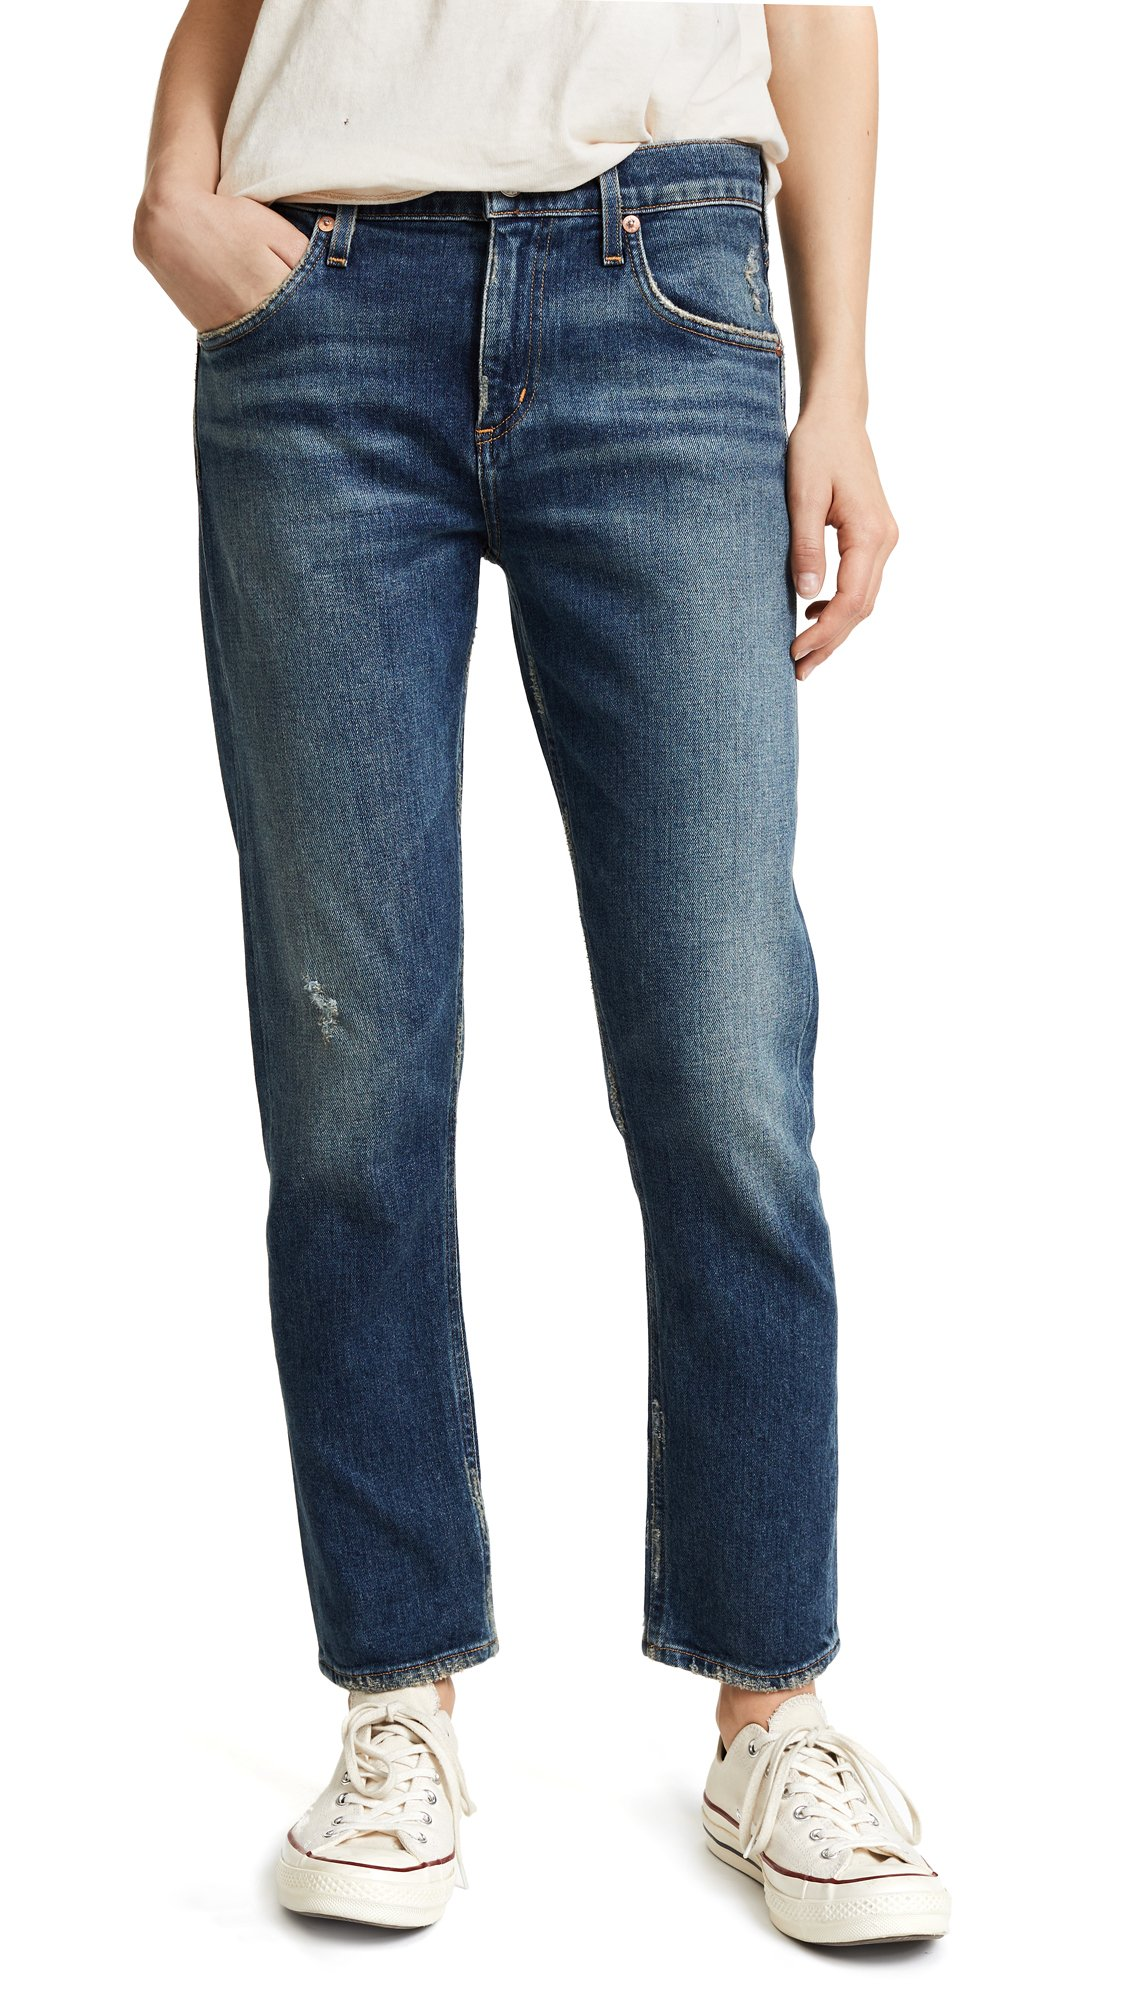 AGOLDE Women's The Isabel Mid Rise Slim Straight Jeans, Sanctuary, 25